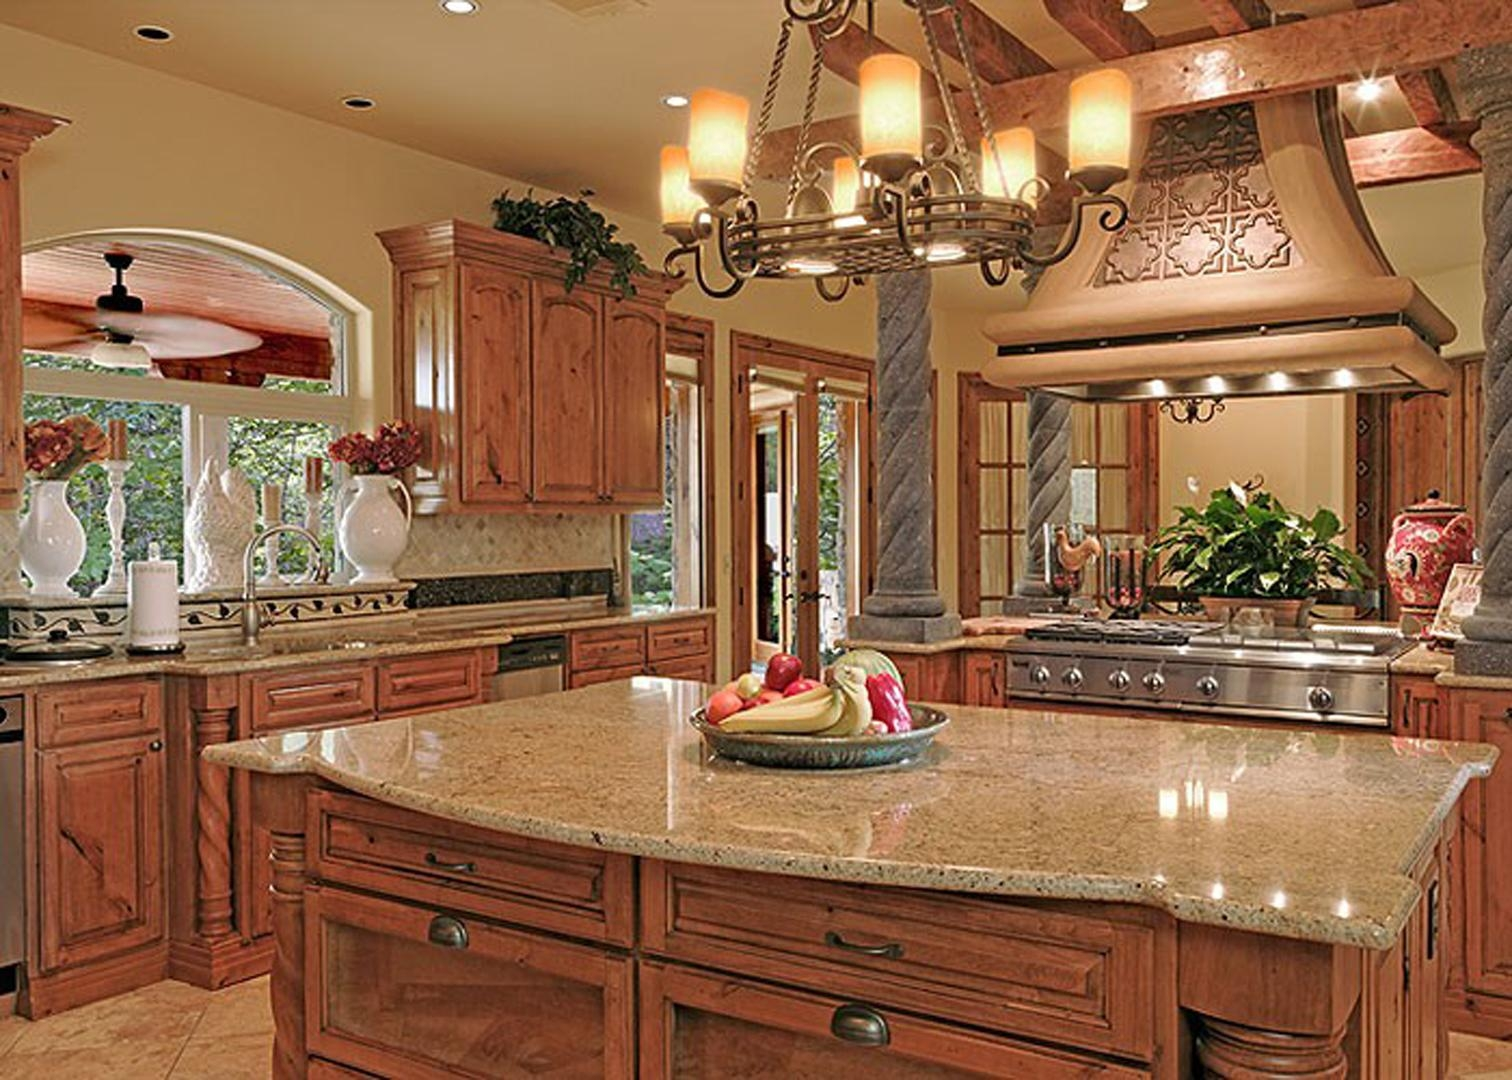 Luxurious Tuscan Kitchen Decorations | All Home Decorations With Italian Themed Kitchen Wall Art (View 17 of 20)